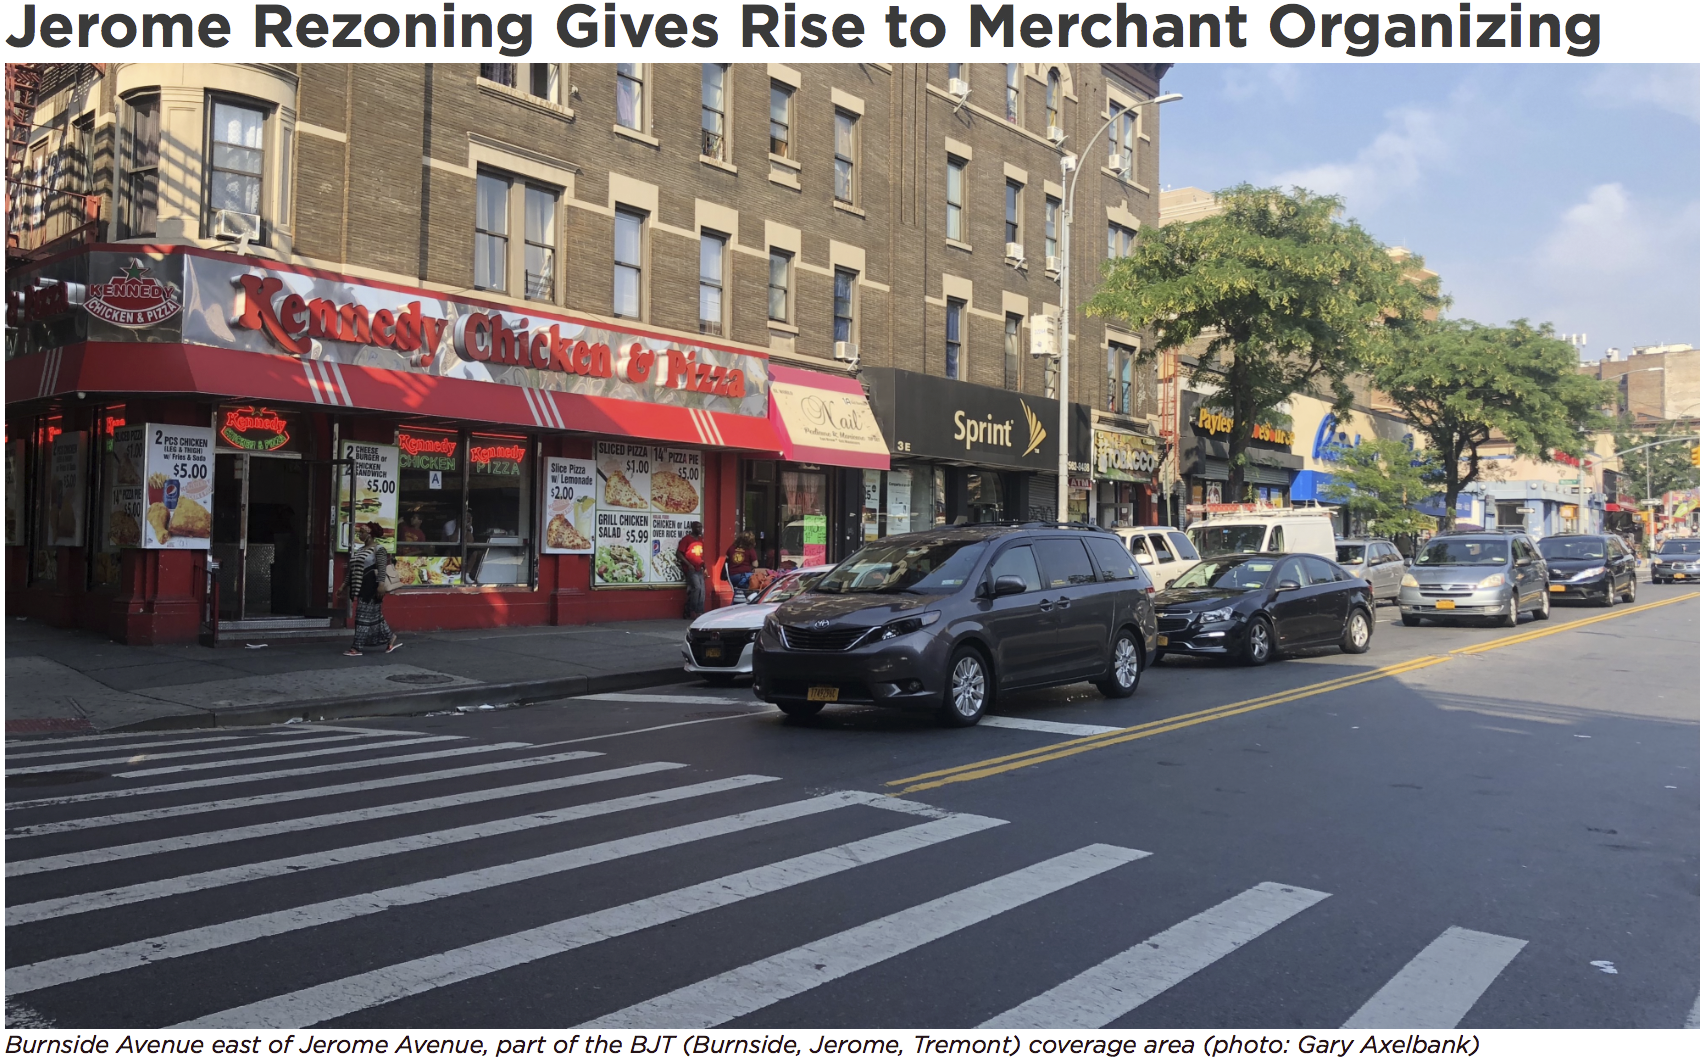 The  Davidson Community Center  has launched the  Burnside Jerome Tremont (BJT) Bronx Commercial District Marketing Campaign and Merchant Association.  Click the image to read the full article.